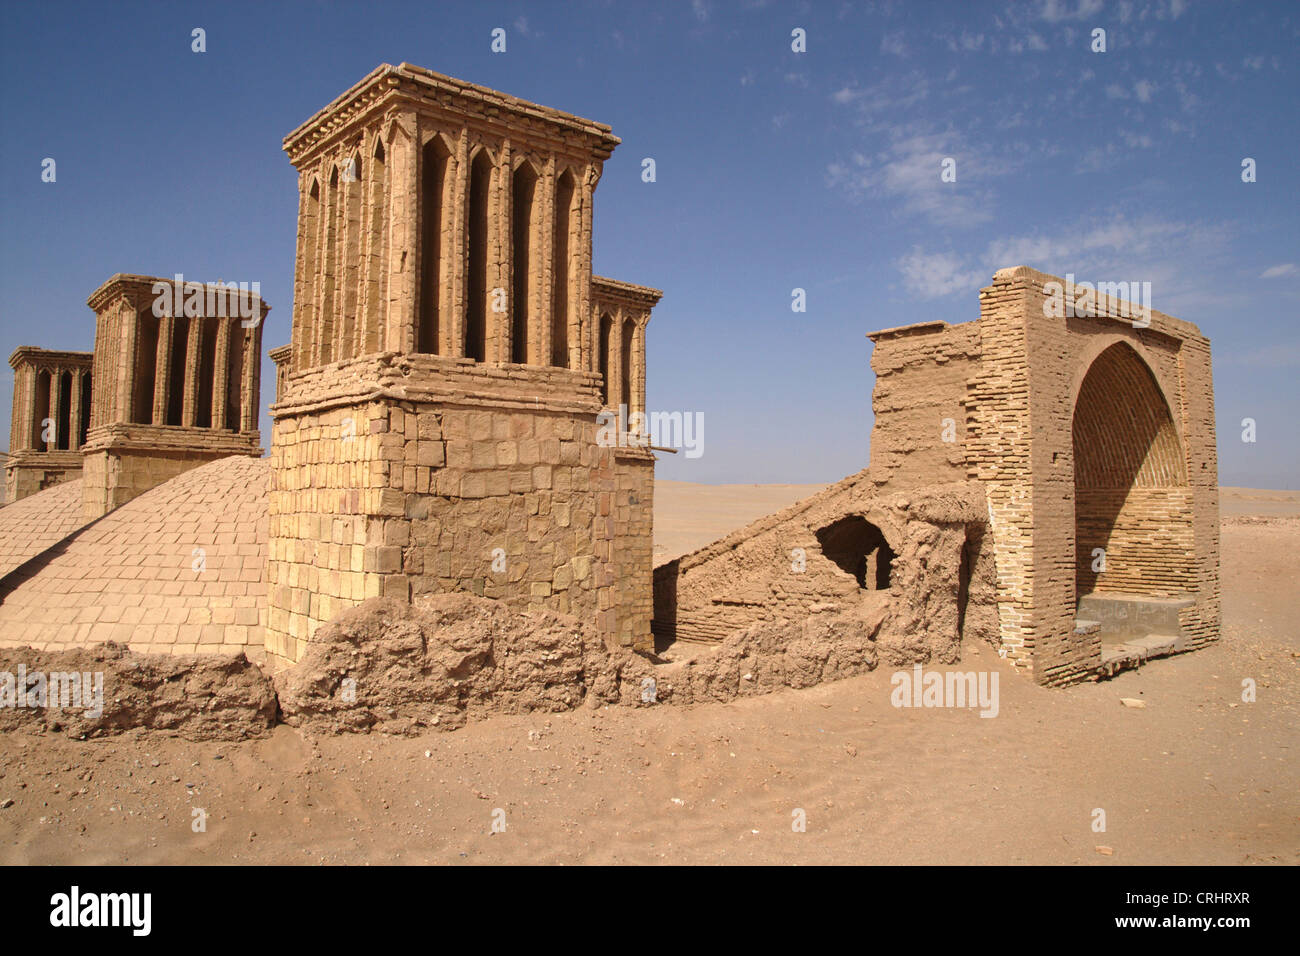 wind cooled water reservoir in the desert near Yazd, Iran - Stock Image